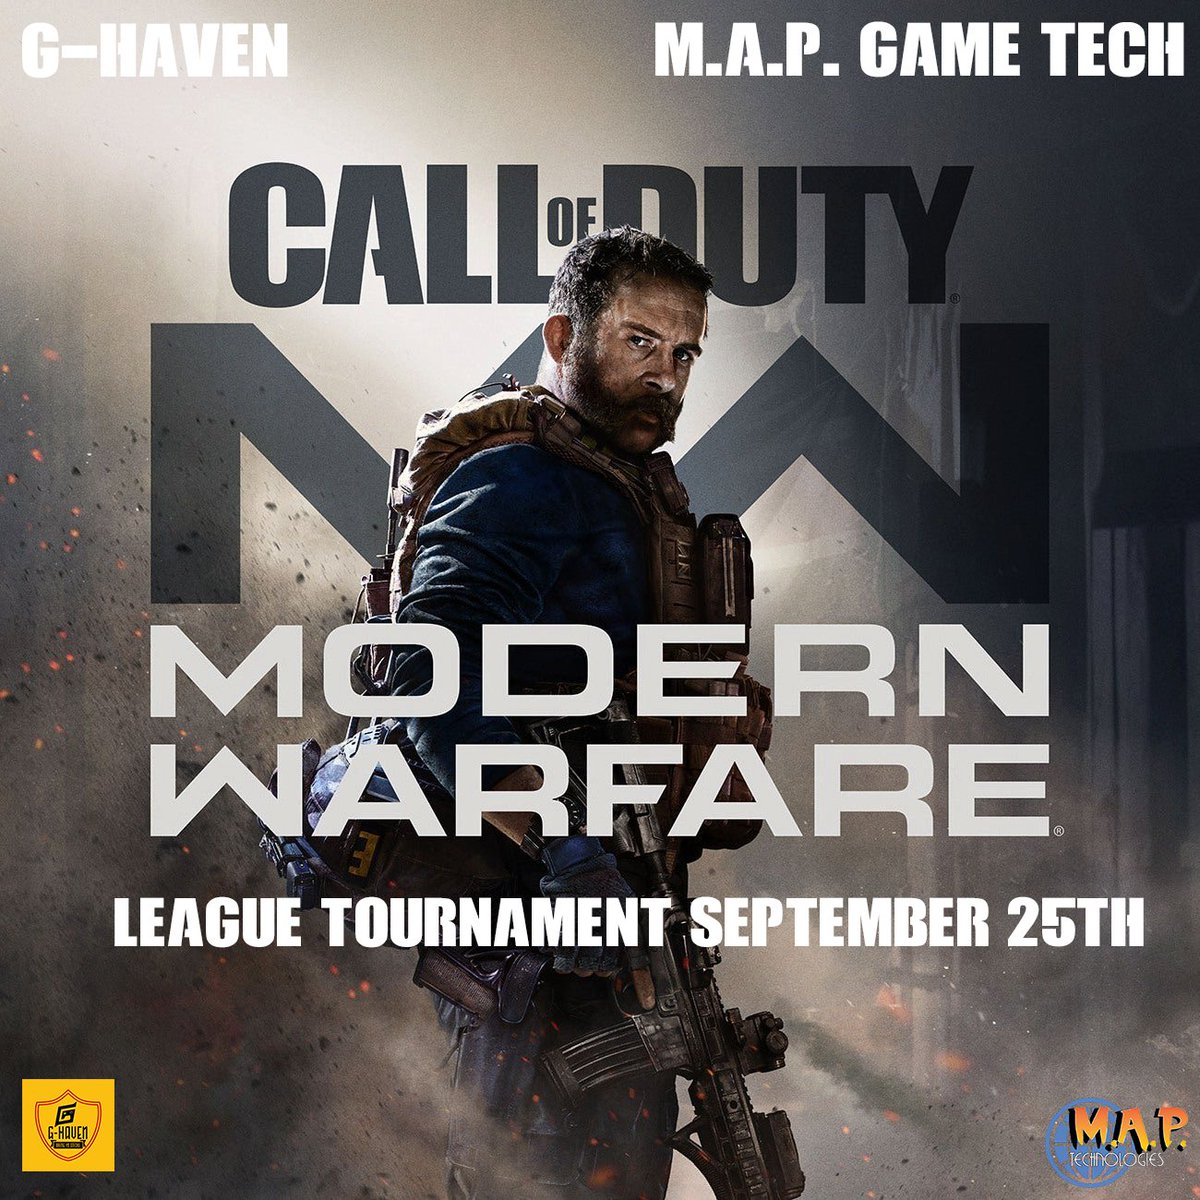 You think you can take on our pro team in COD Warzone?! Come at us and Bring Yo Sticks!!! DM us to challenge the team #BringYoSticks #gaming #GhavenEsports #gamer #twitchstreamer #xbox #Monster #Activision #RedBull #ElectronicArts #Gamestop #Honda #cod #CoD2020 #CoDMW https://t.co/GphOzglypu